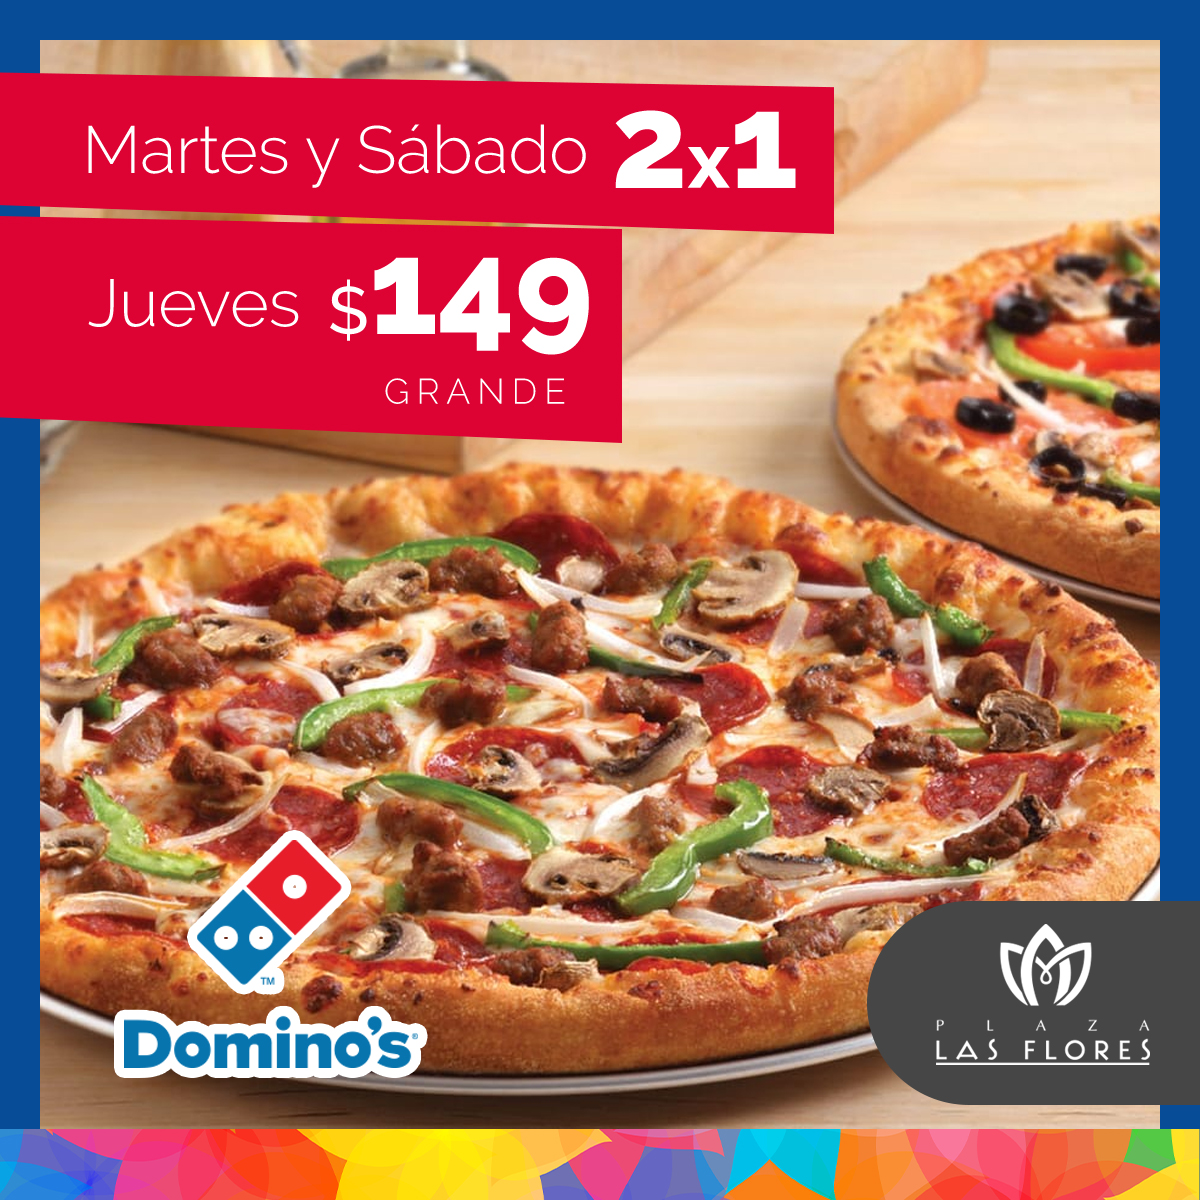 LasFlores-Ofertas-Dominos copy